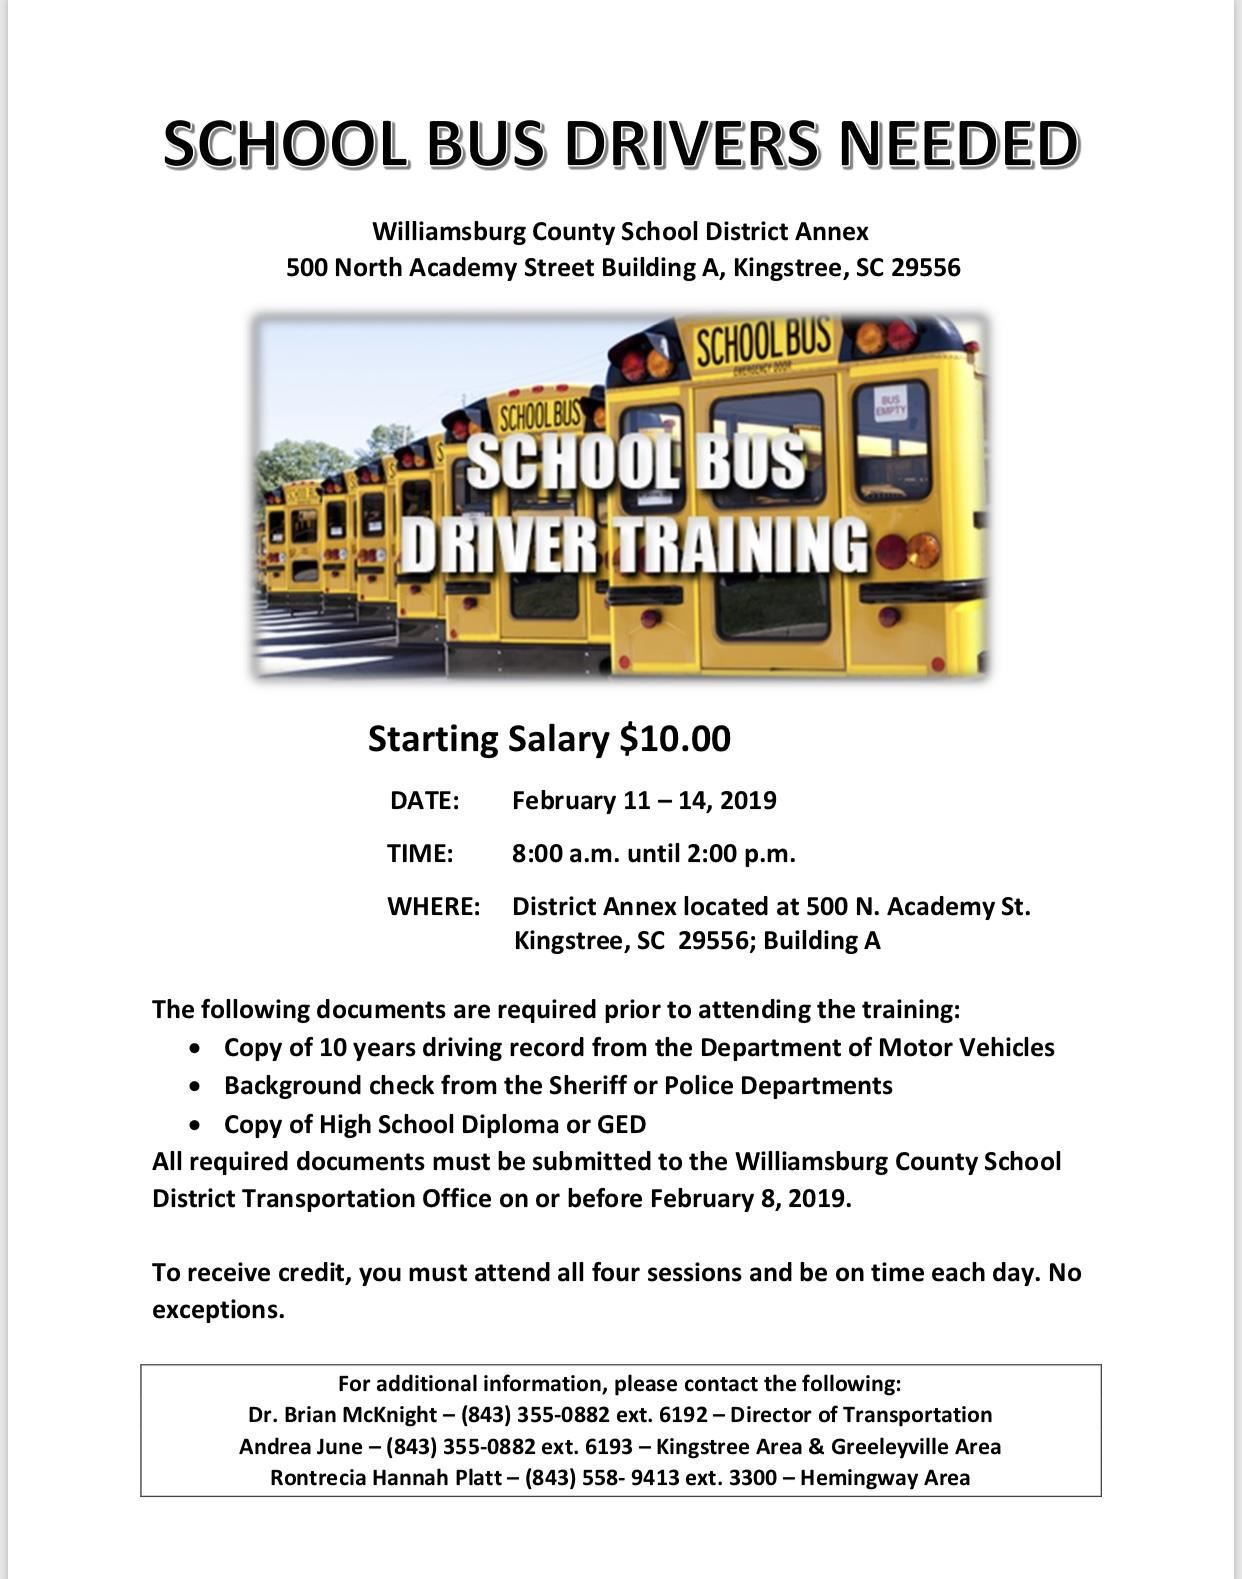 School Bus Driver Training Announcement